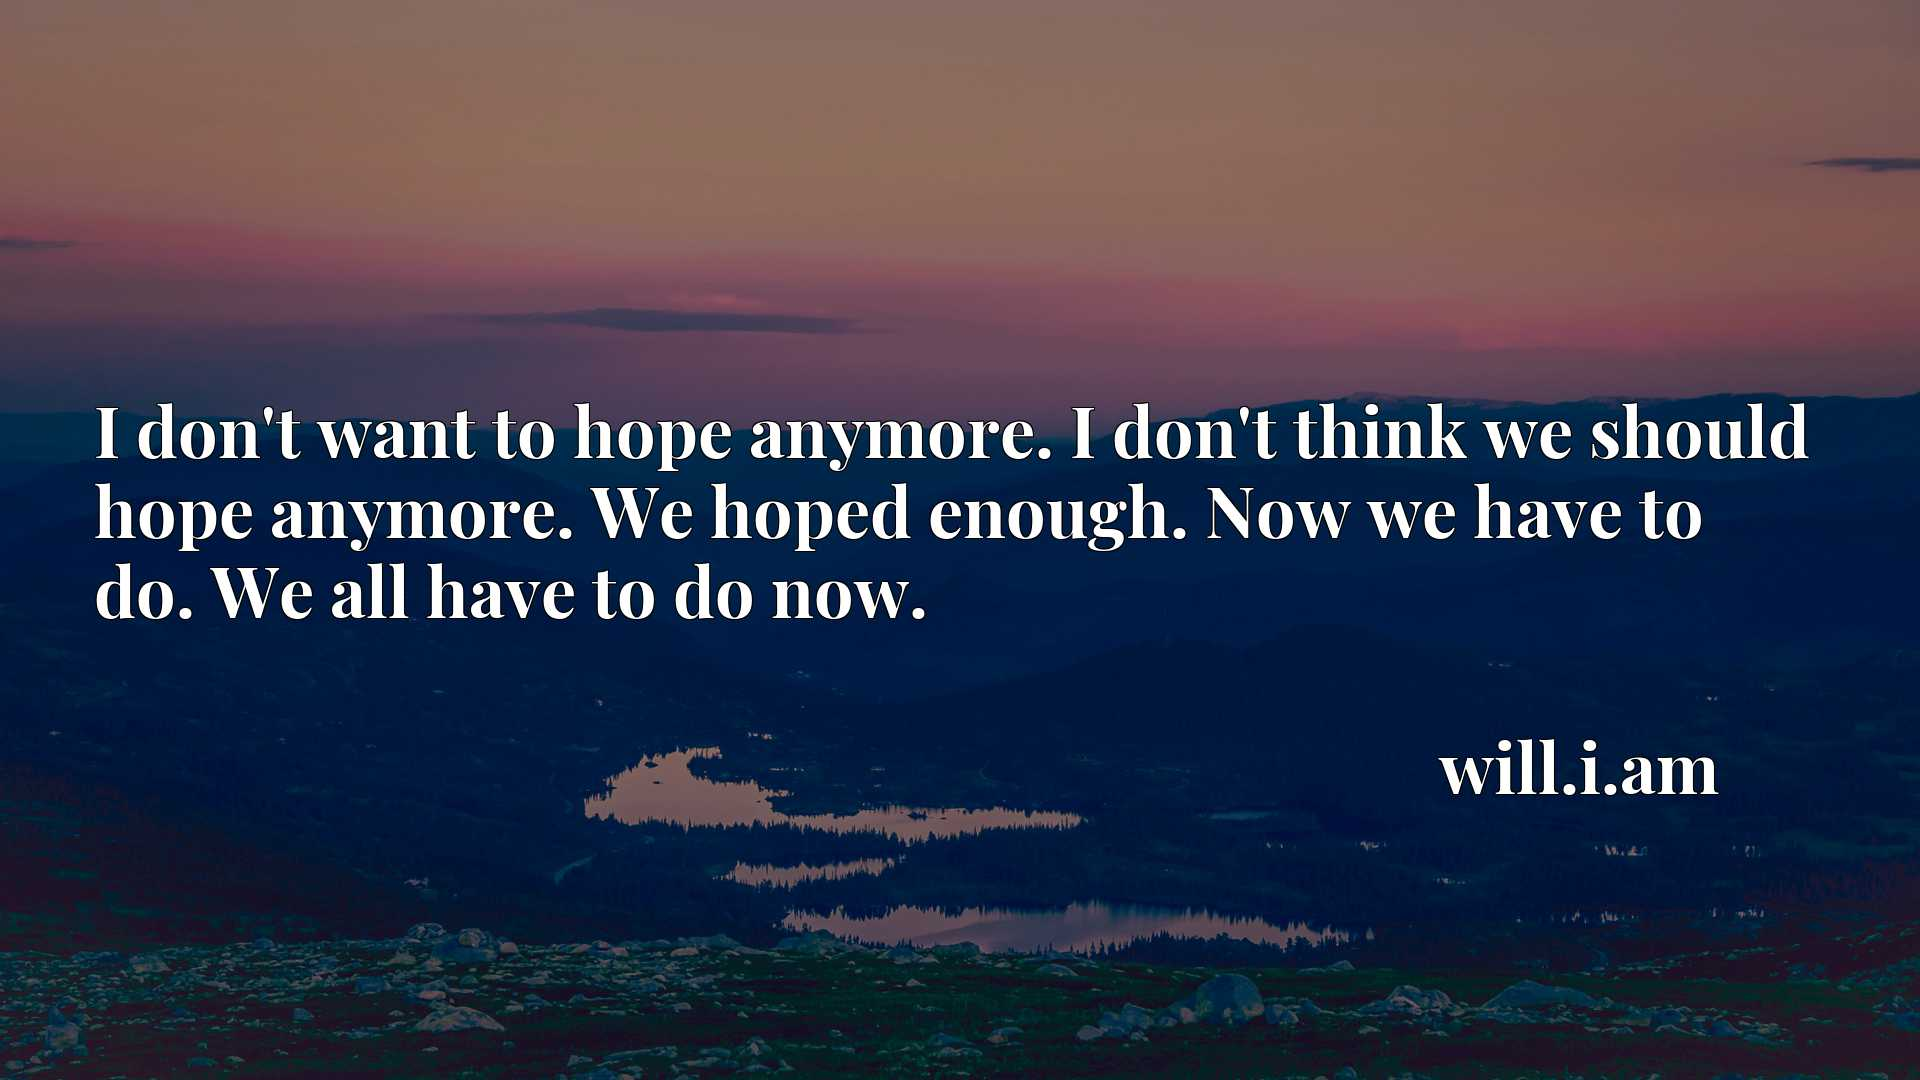 I don't want to hope anymore. I don't think we should hope anymore. We hoped enough. Now we have to do. We all have to do now.